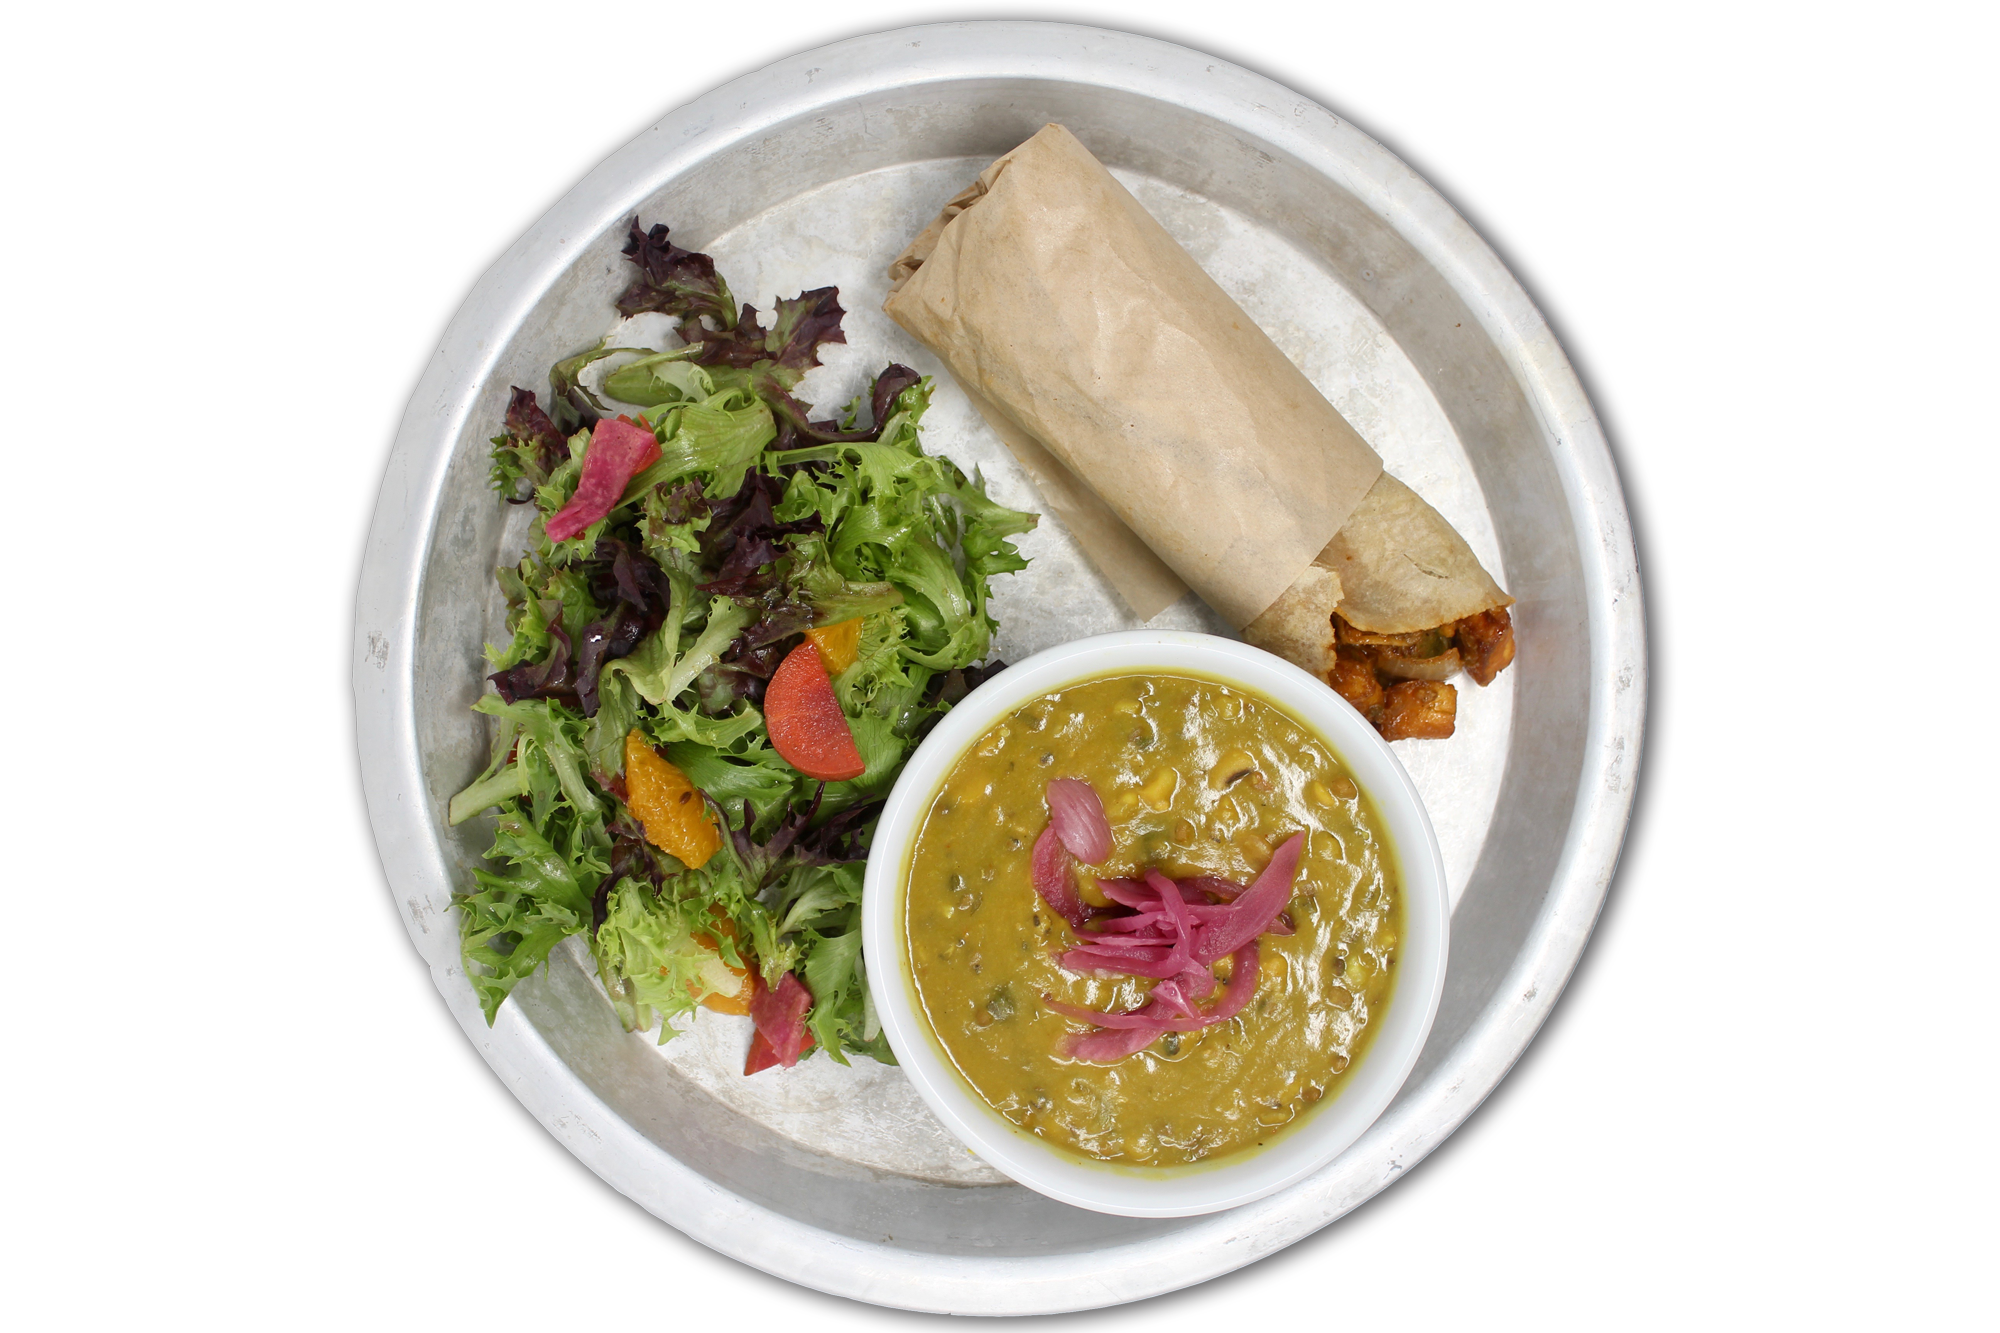 SOUP N' ROLL   choice of chicken, paneer (VG) or free range plant protein (V) wrapped in a brown rice tortilla, daal lentil soup, local organic salad